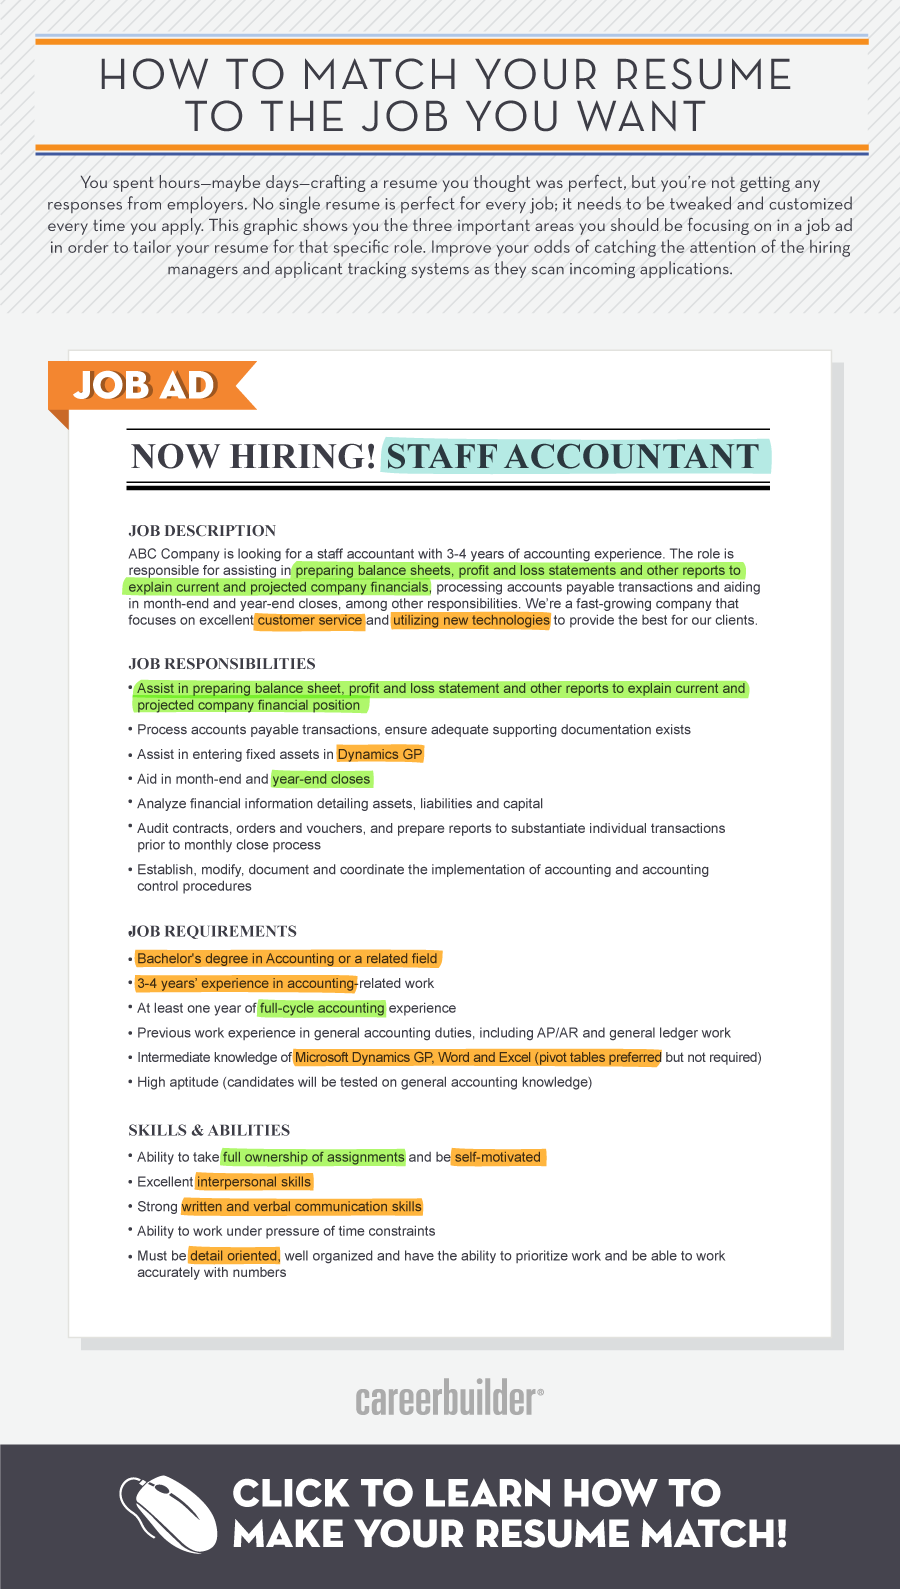 ifo 0044_customresume_snippet